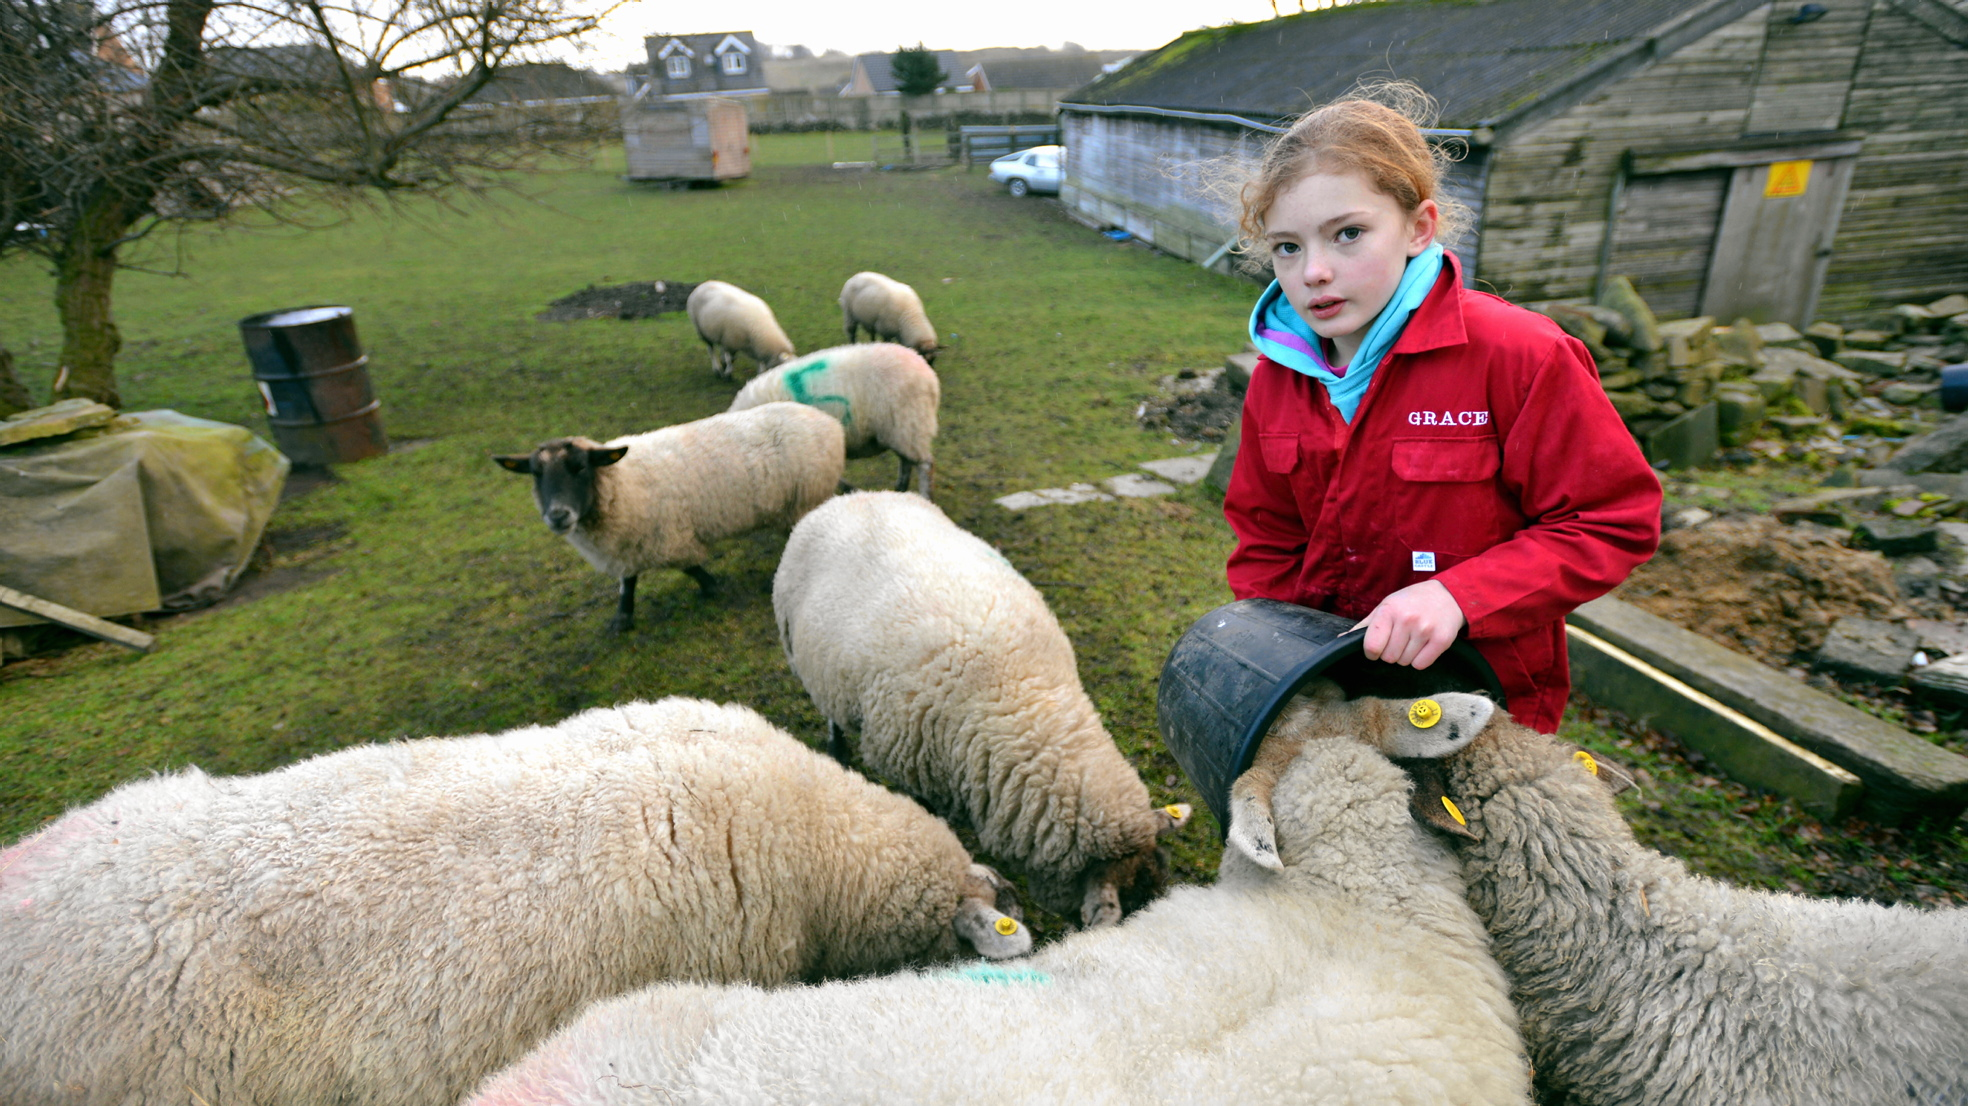 Sheep at Oakbank Farm, Wrose, are tended by Grace after the death of pregnant sheep Miggledy